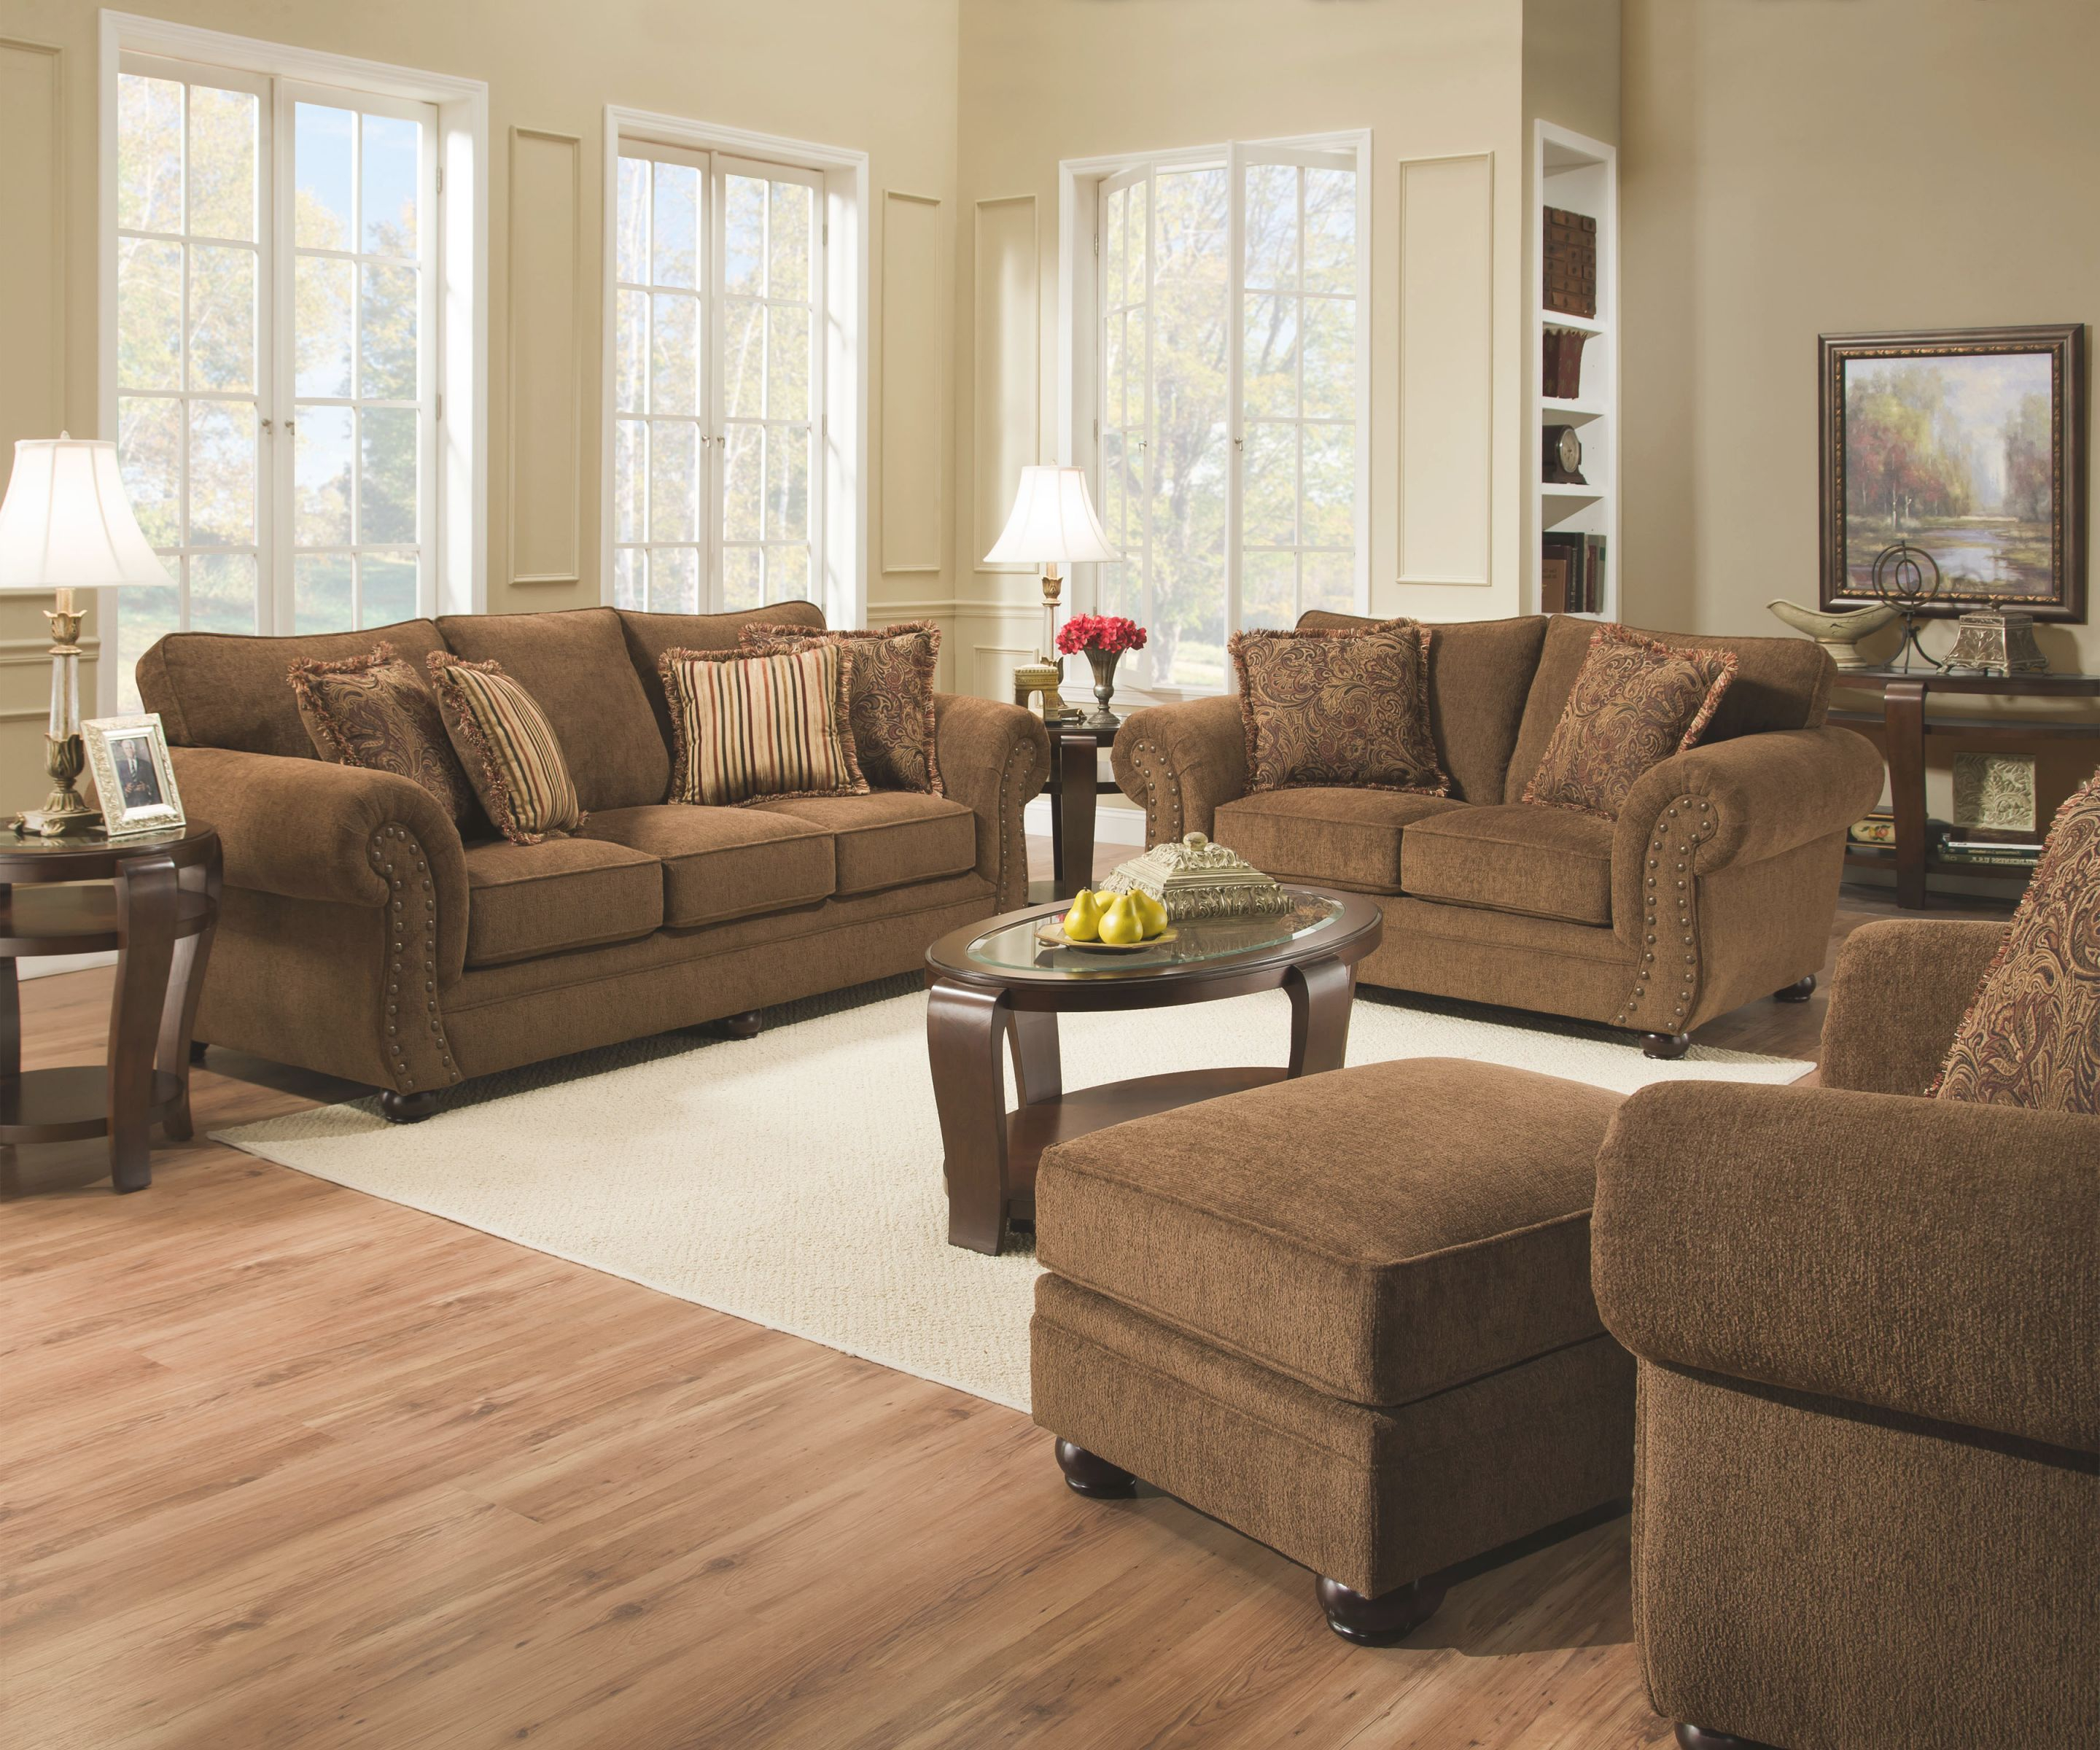 Simmons 4277 Sofa – Your Furniture 4 Less throughout New Simmons Living Room Furniture